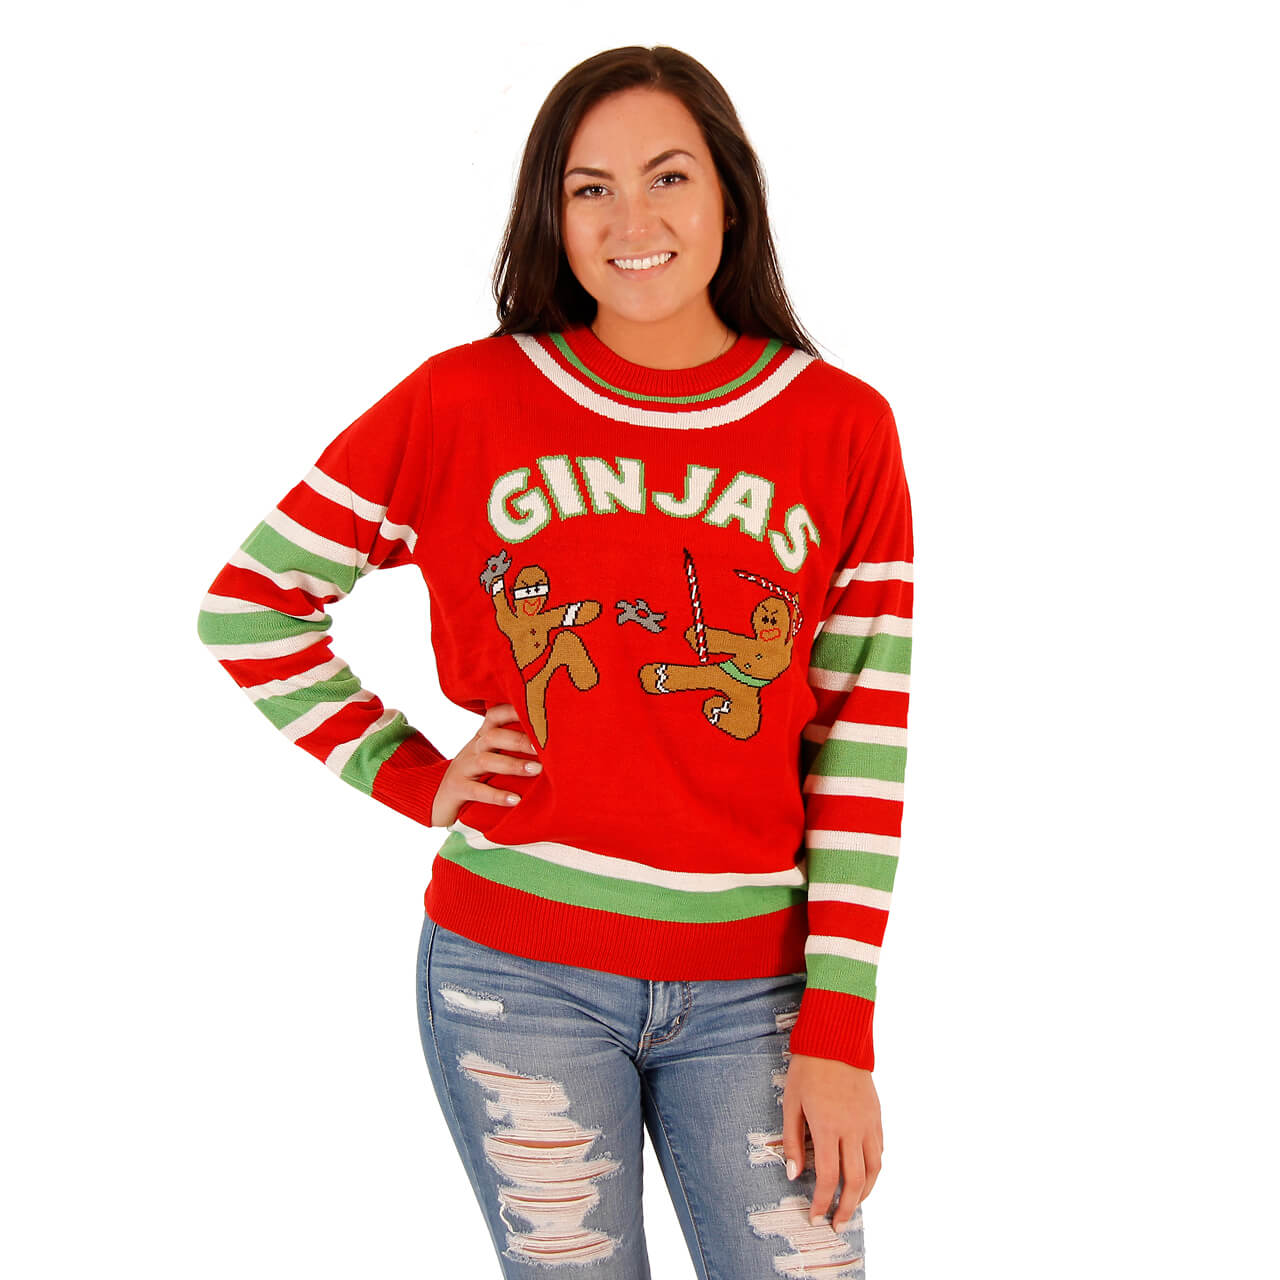 Womens Fighting Ginger Breadmen Ginjas Red Ugly Christmas Sweater